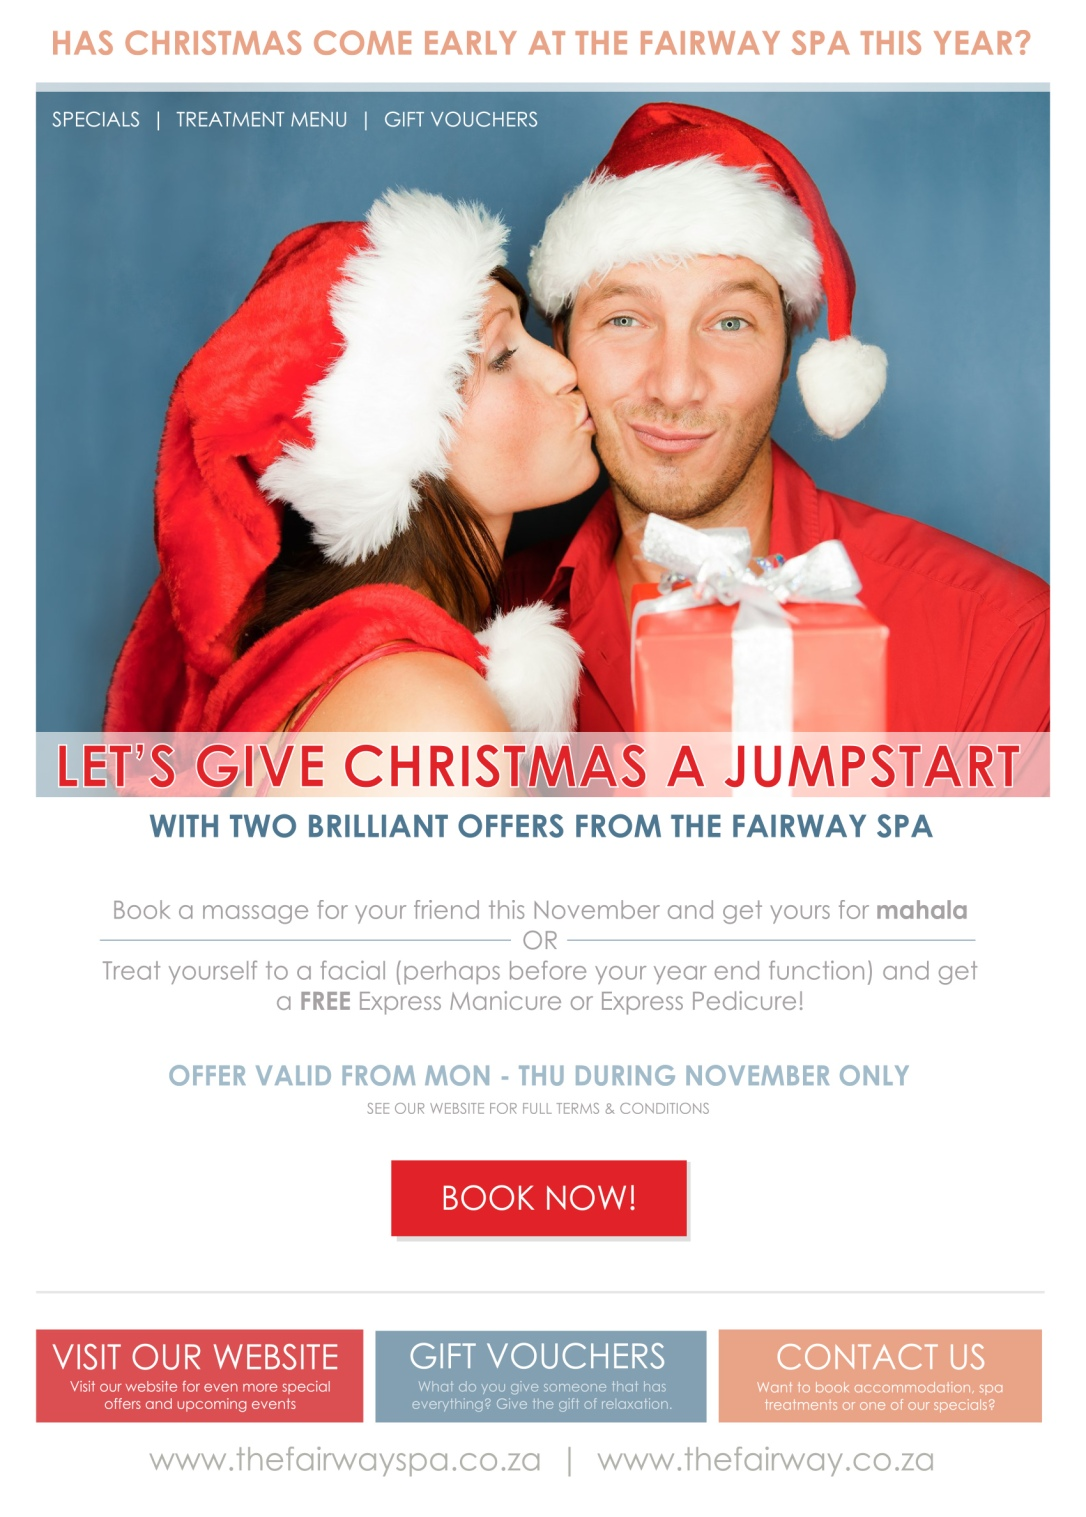 Jumpstart Christmas 2016 - The Fairway Spa